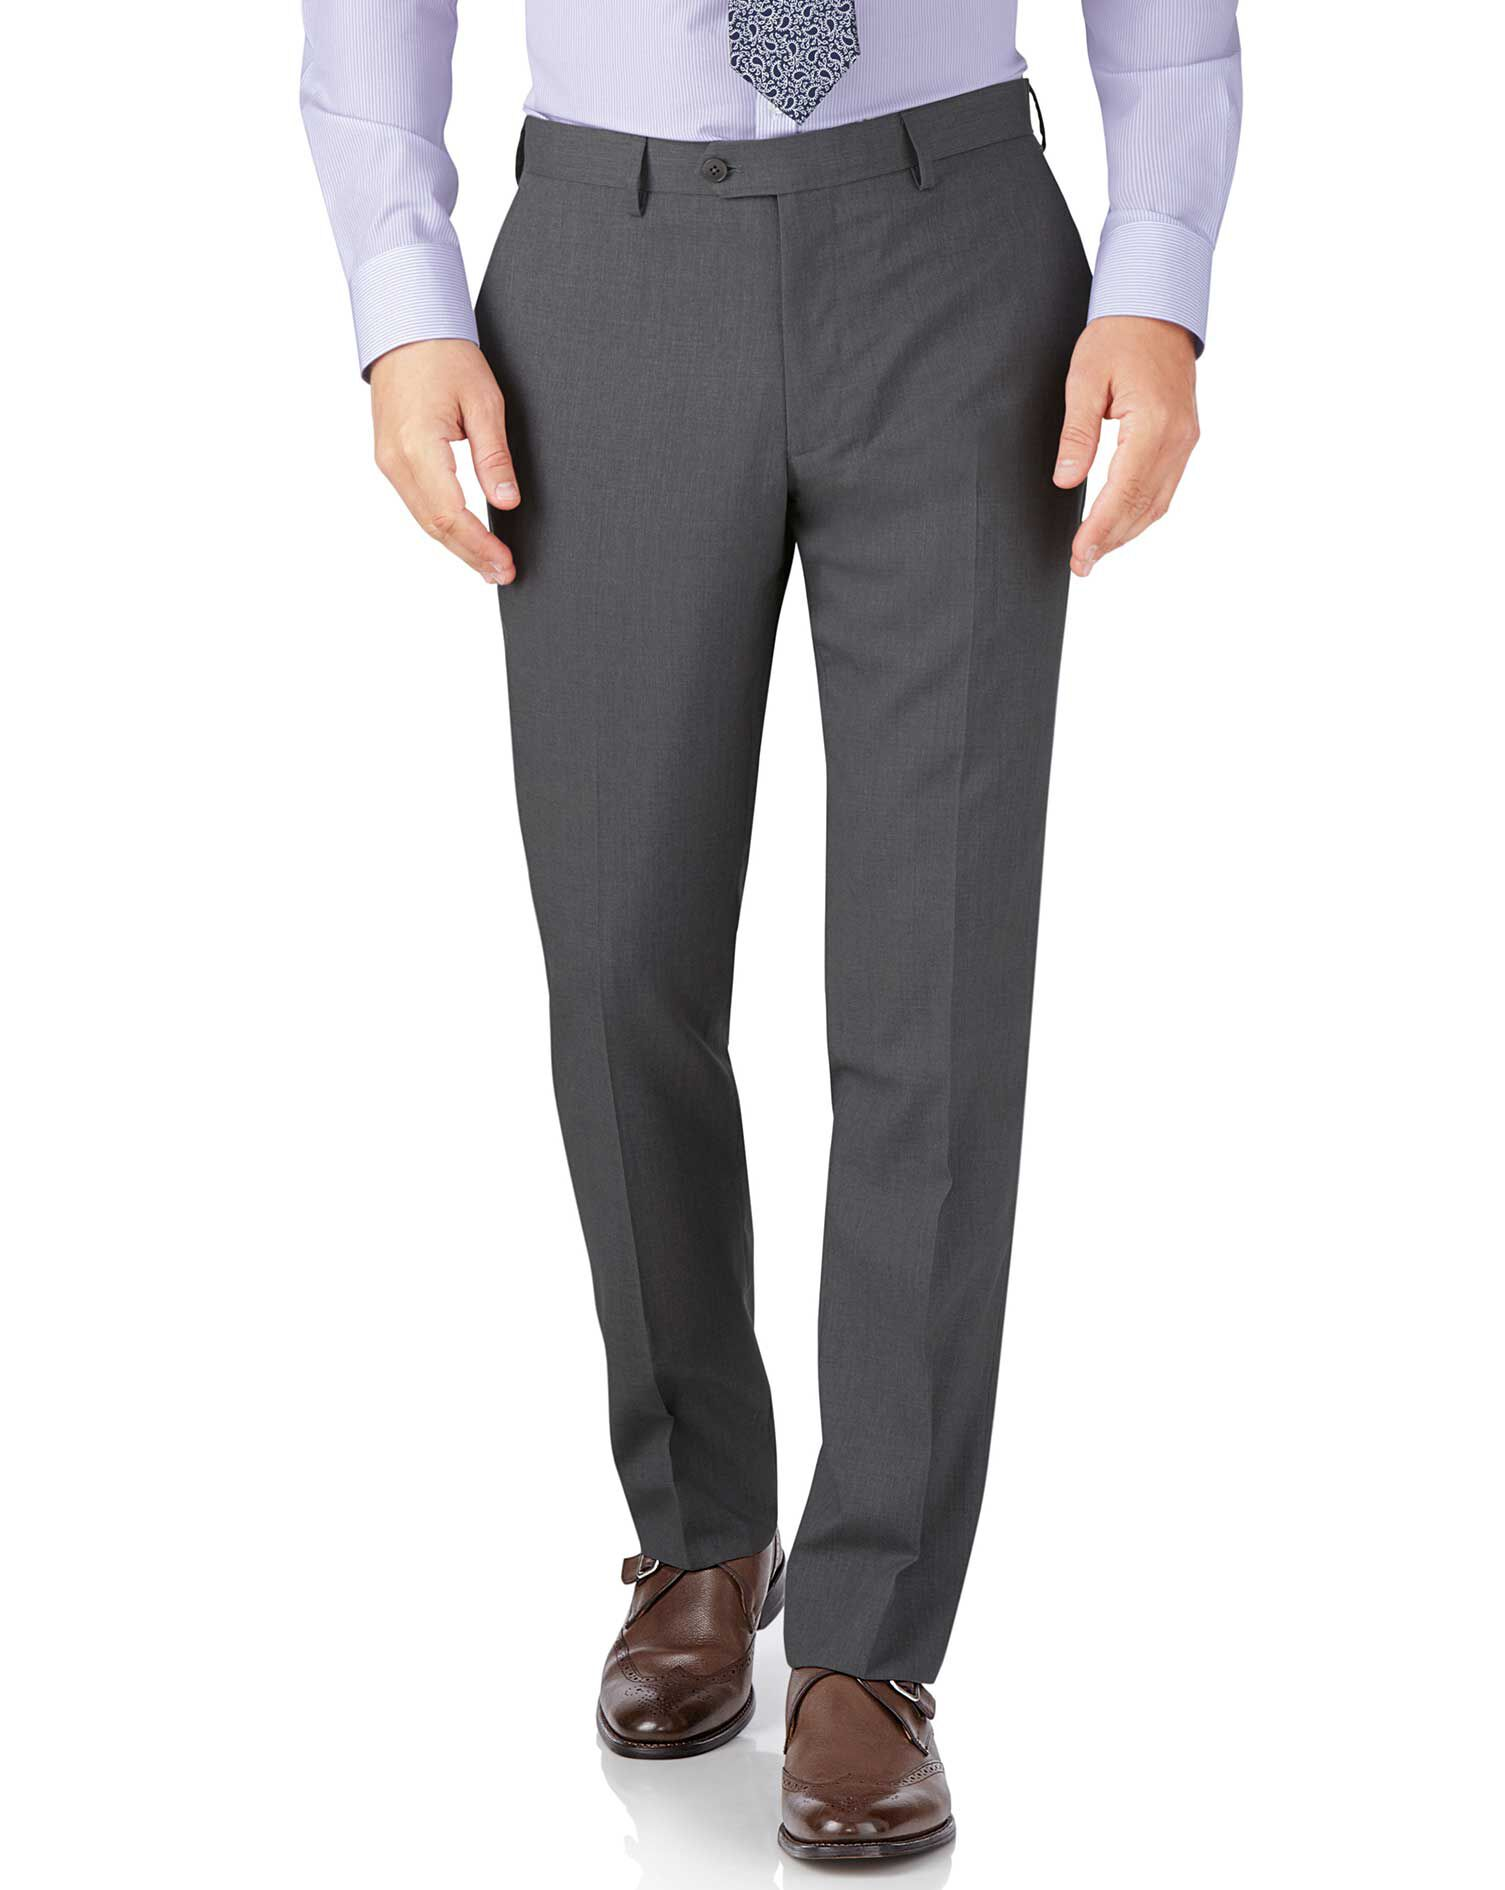 Silver Slim Fit Crepe Business Suit Trousers Size W40 L34 by Charles Tyrwhitt